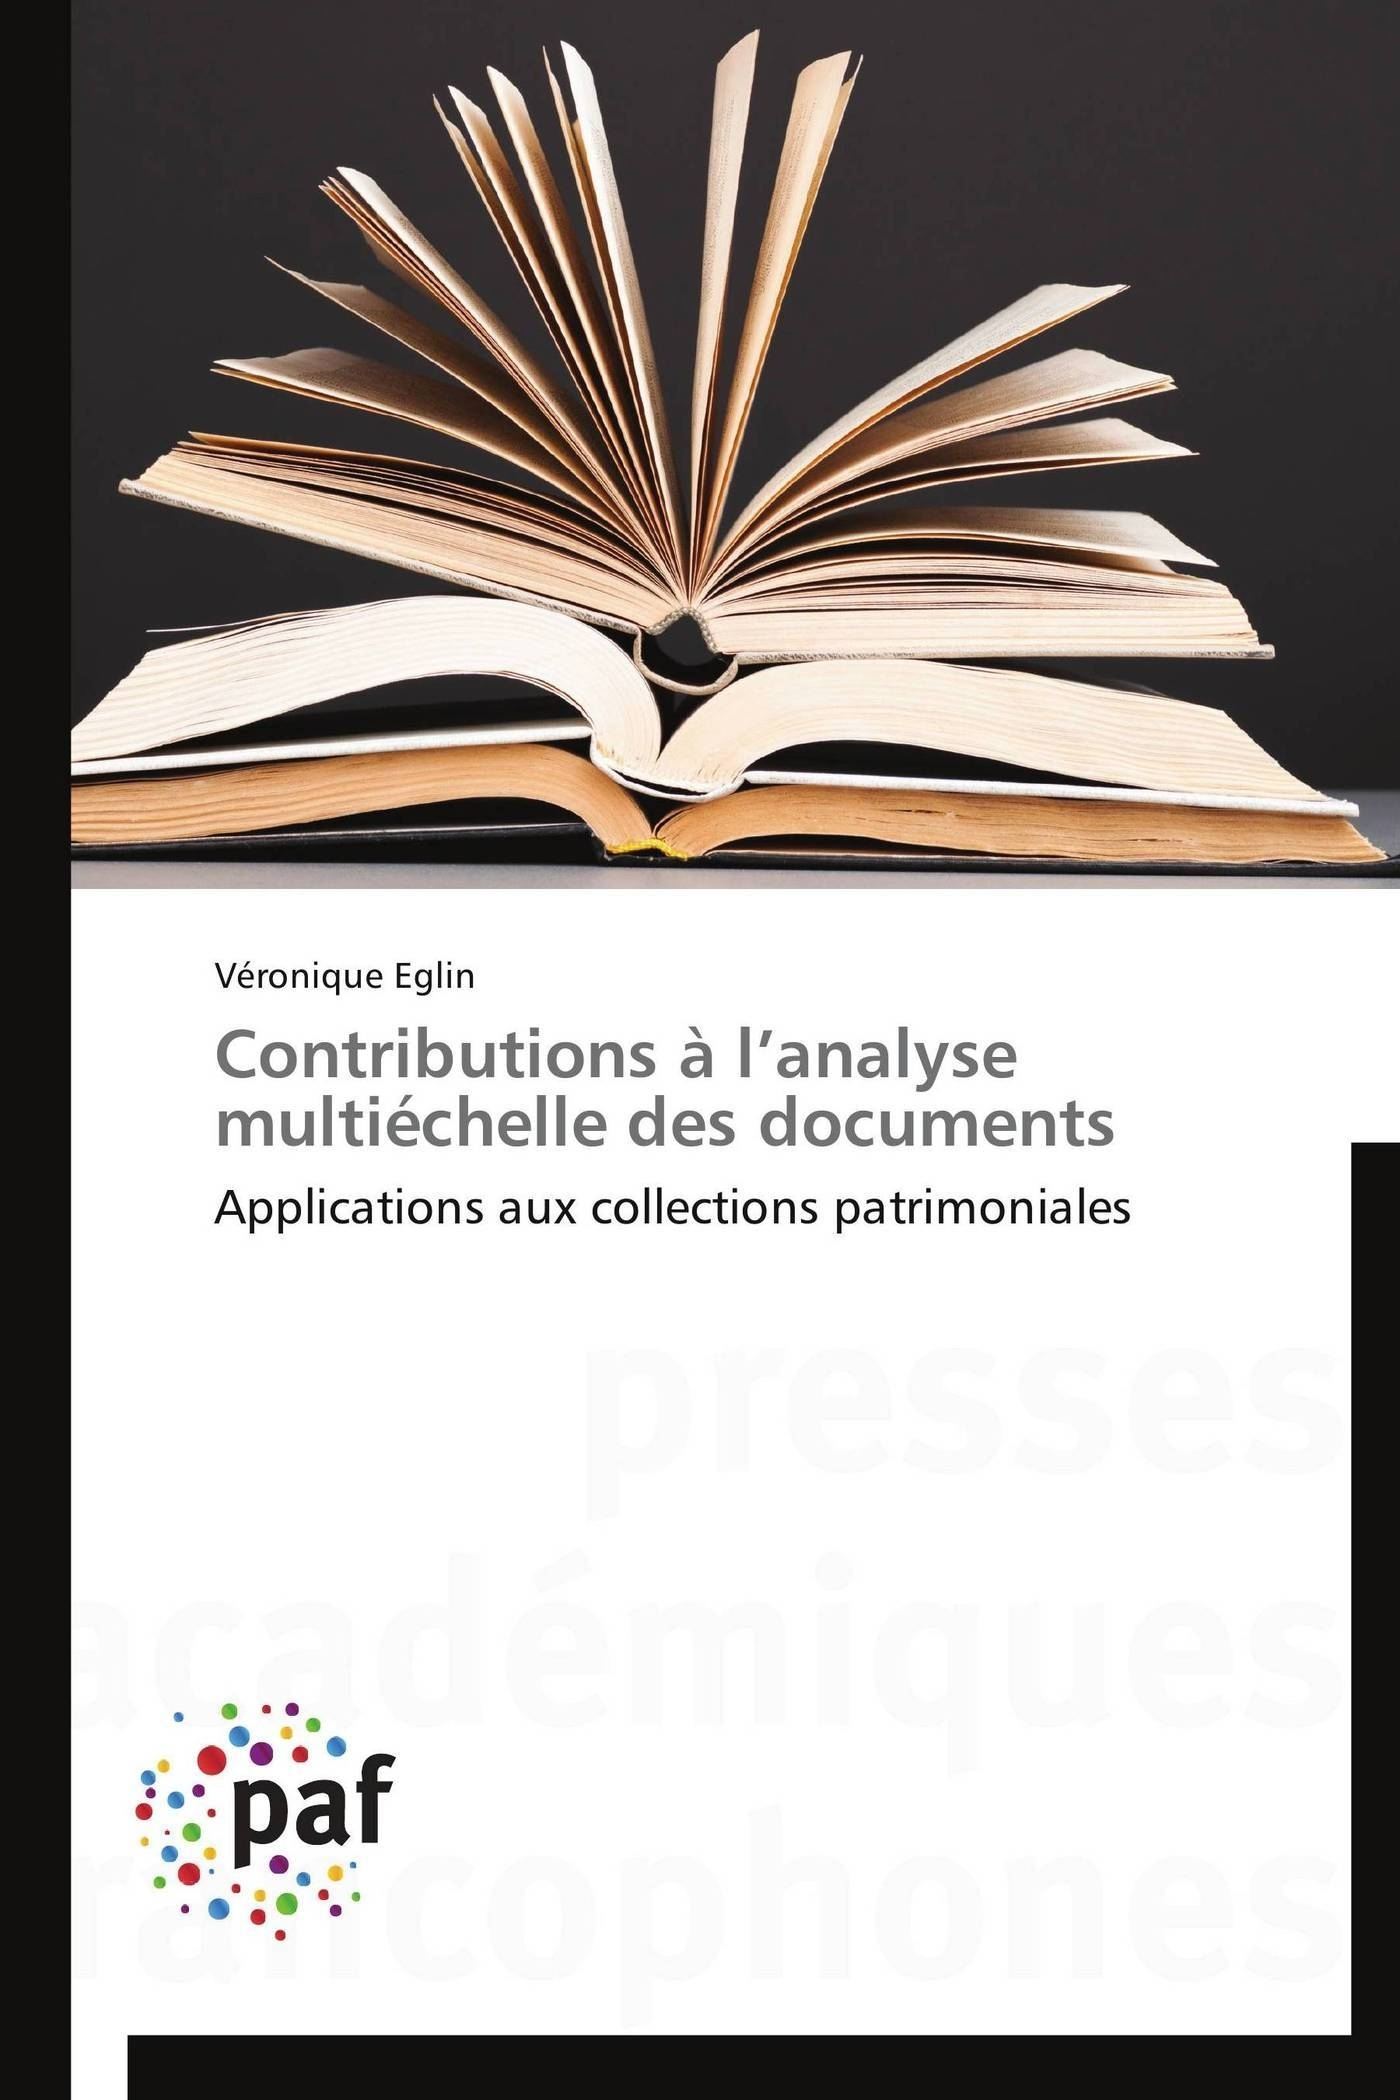 CONTRIBUTIONS A L ANALYSE MULTIECHELLE DES DOCUMENTS